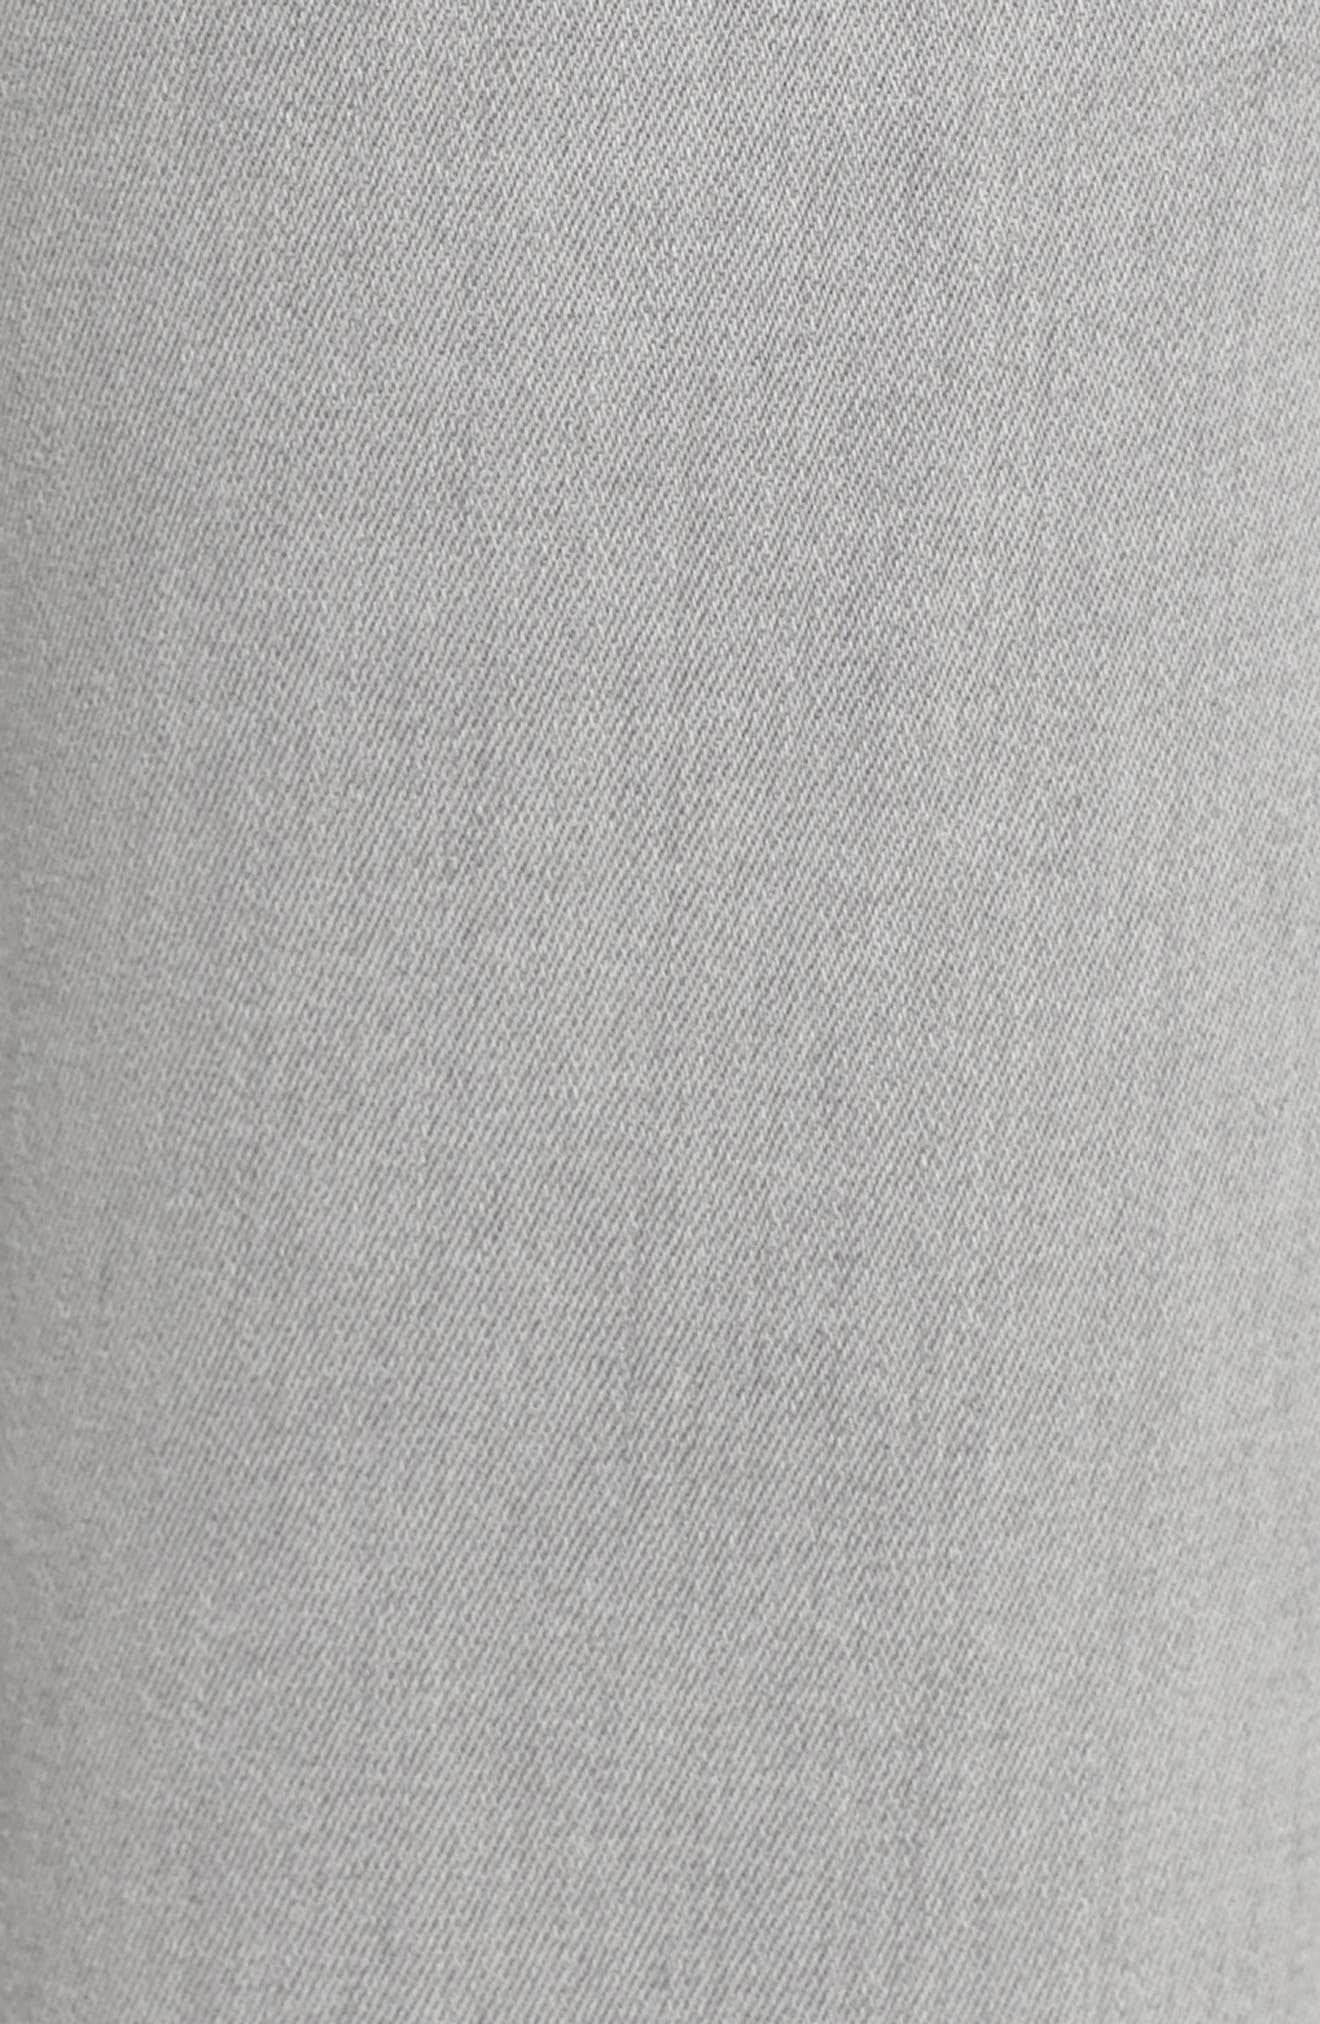 7 FOR ALL MANKIND<SUP>®</SUP>, b(air) High Waist Raw Hem Ankle Skinny Jeans, Alternate thumbnail 6, color, BAIR PURE SOFT GREY